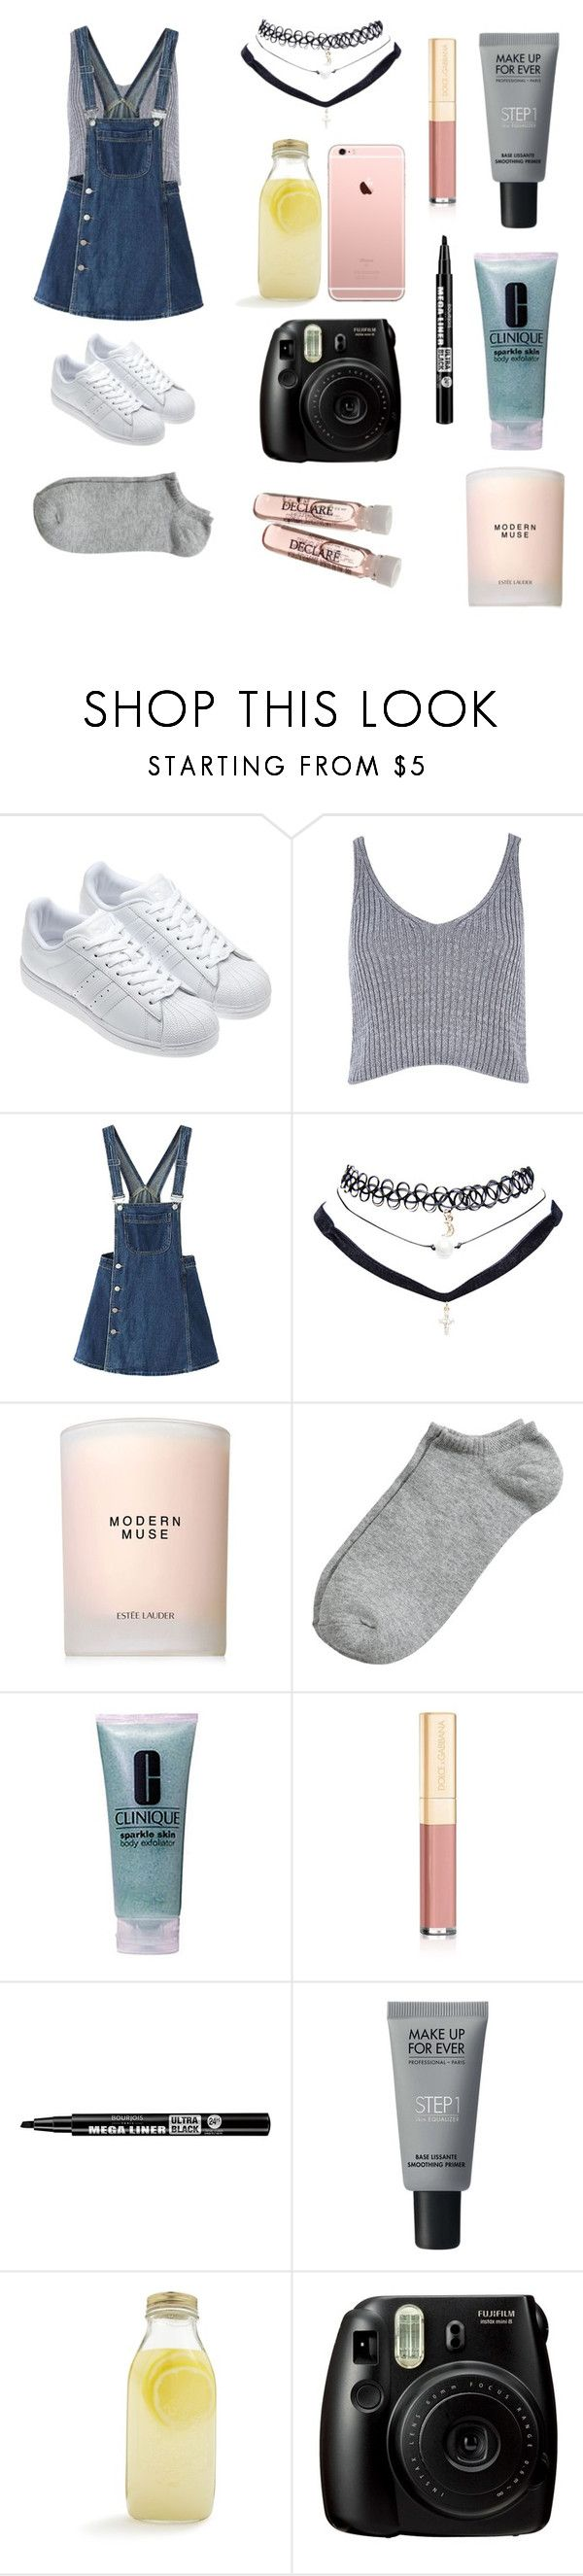 """""""Prety girl 2"""" by yulidounut ❤ liked on Polyvore featuring adidas, River Island, WithChic, Wet Seal, Estée Lauder, Clinique, Dolce&Gabbana, Bourjois, MAKE UP FOR EVER and Bormioli Rocco"""